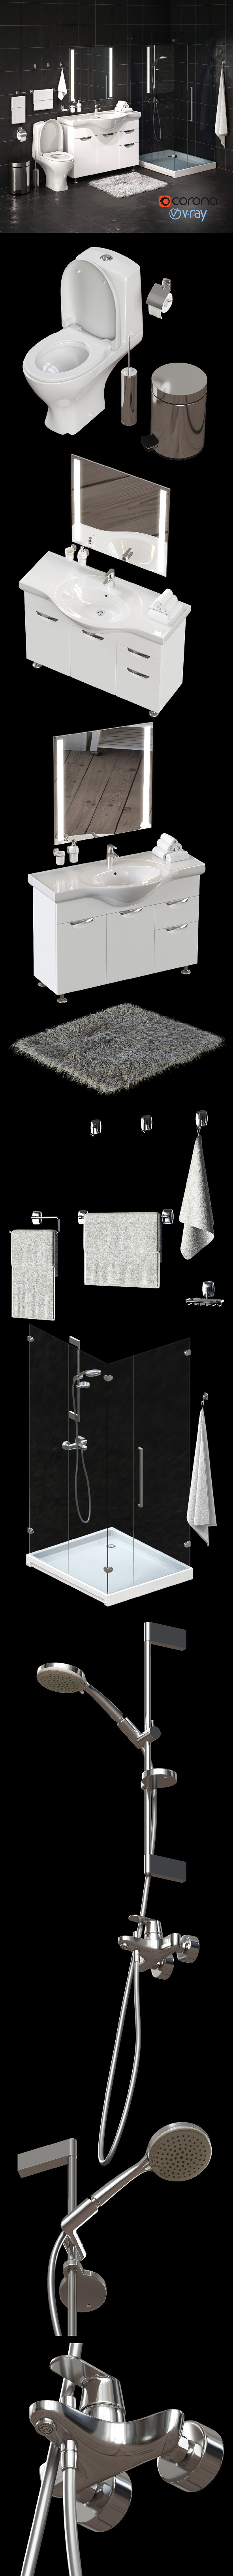 Set Of Bathroom Equipment And Accessories For Bathrooms By Rnax